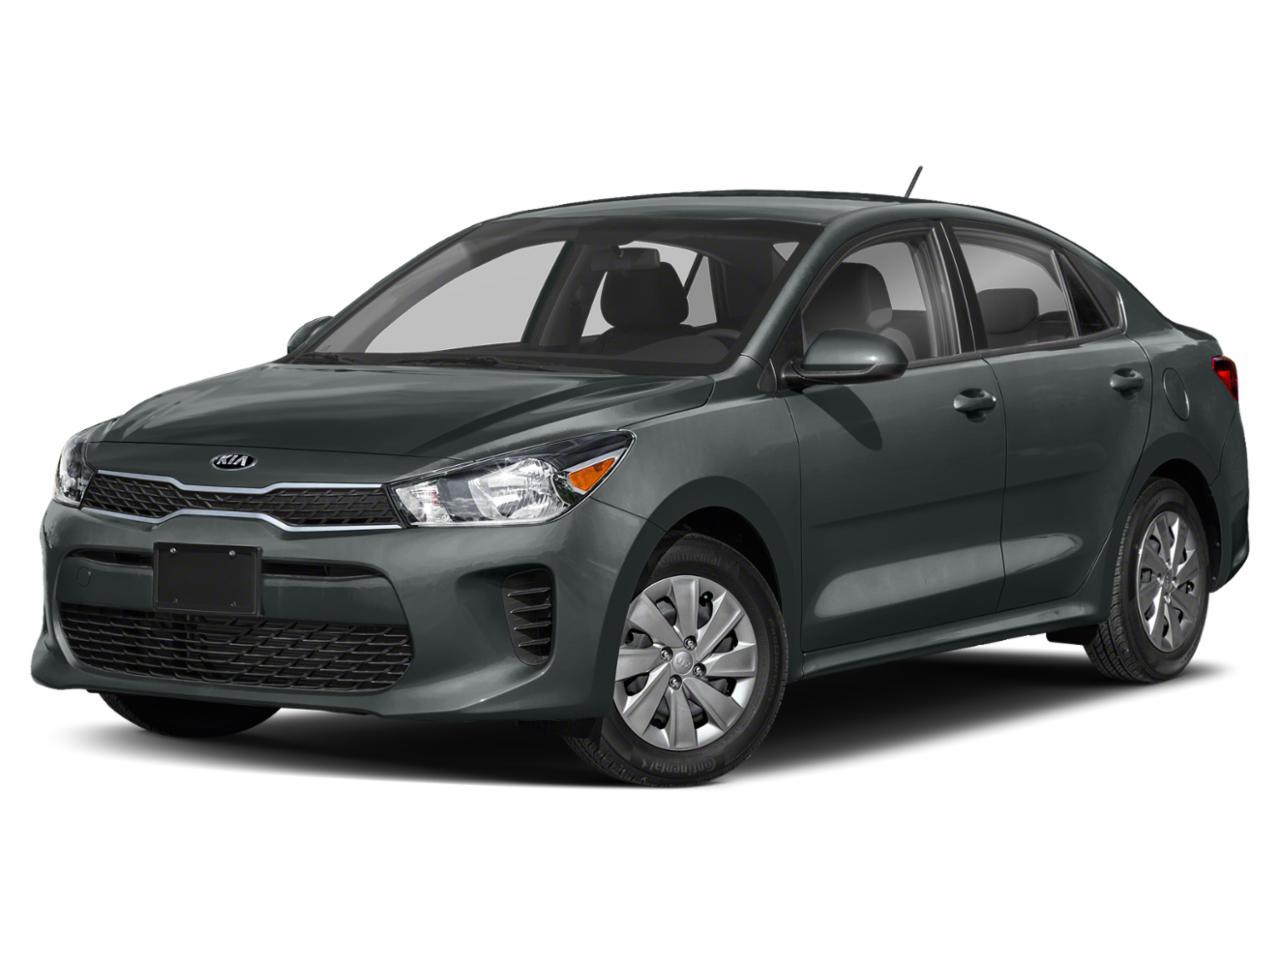 2019 Kia Rio Vehicle Photo in Baton Rouge, LA 70806